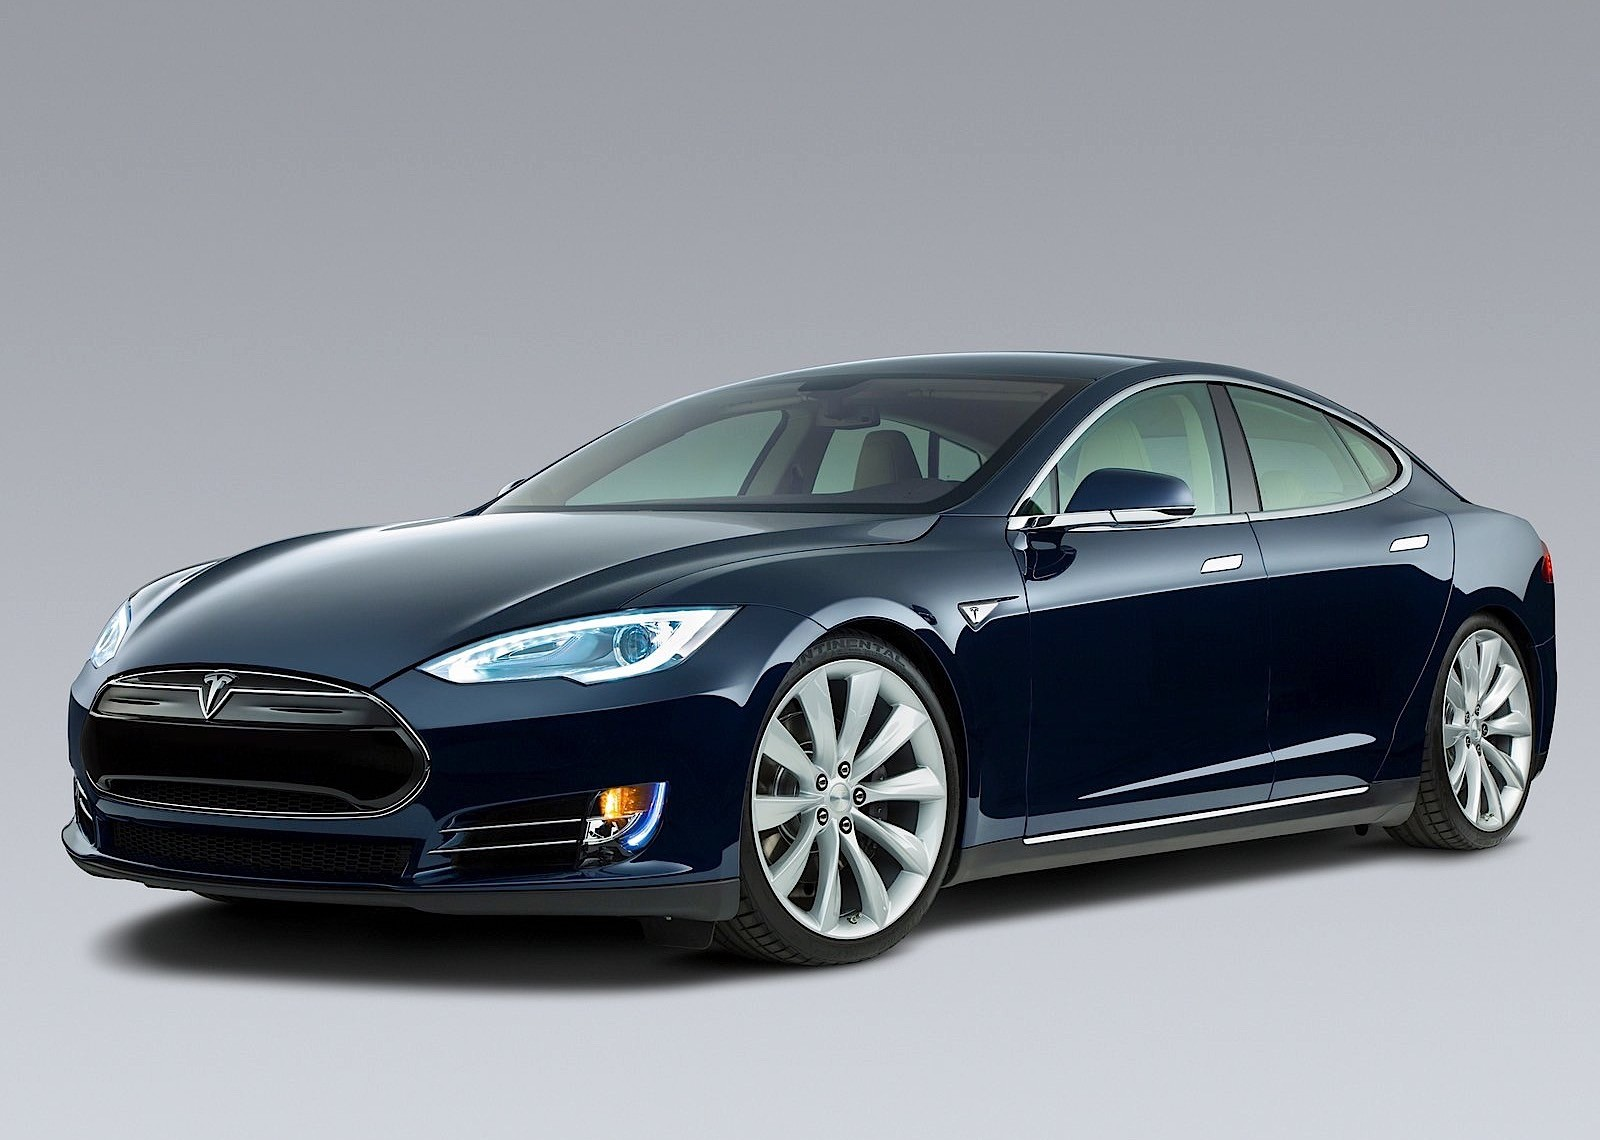 Tesla motors model s 2012 2013 2014 2015 2016 for Tesla motors car price